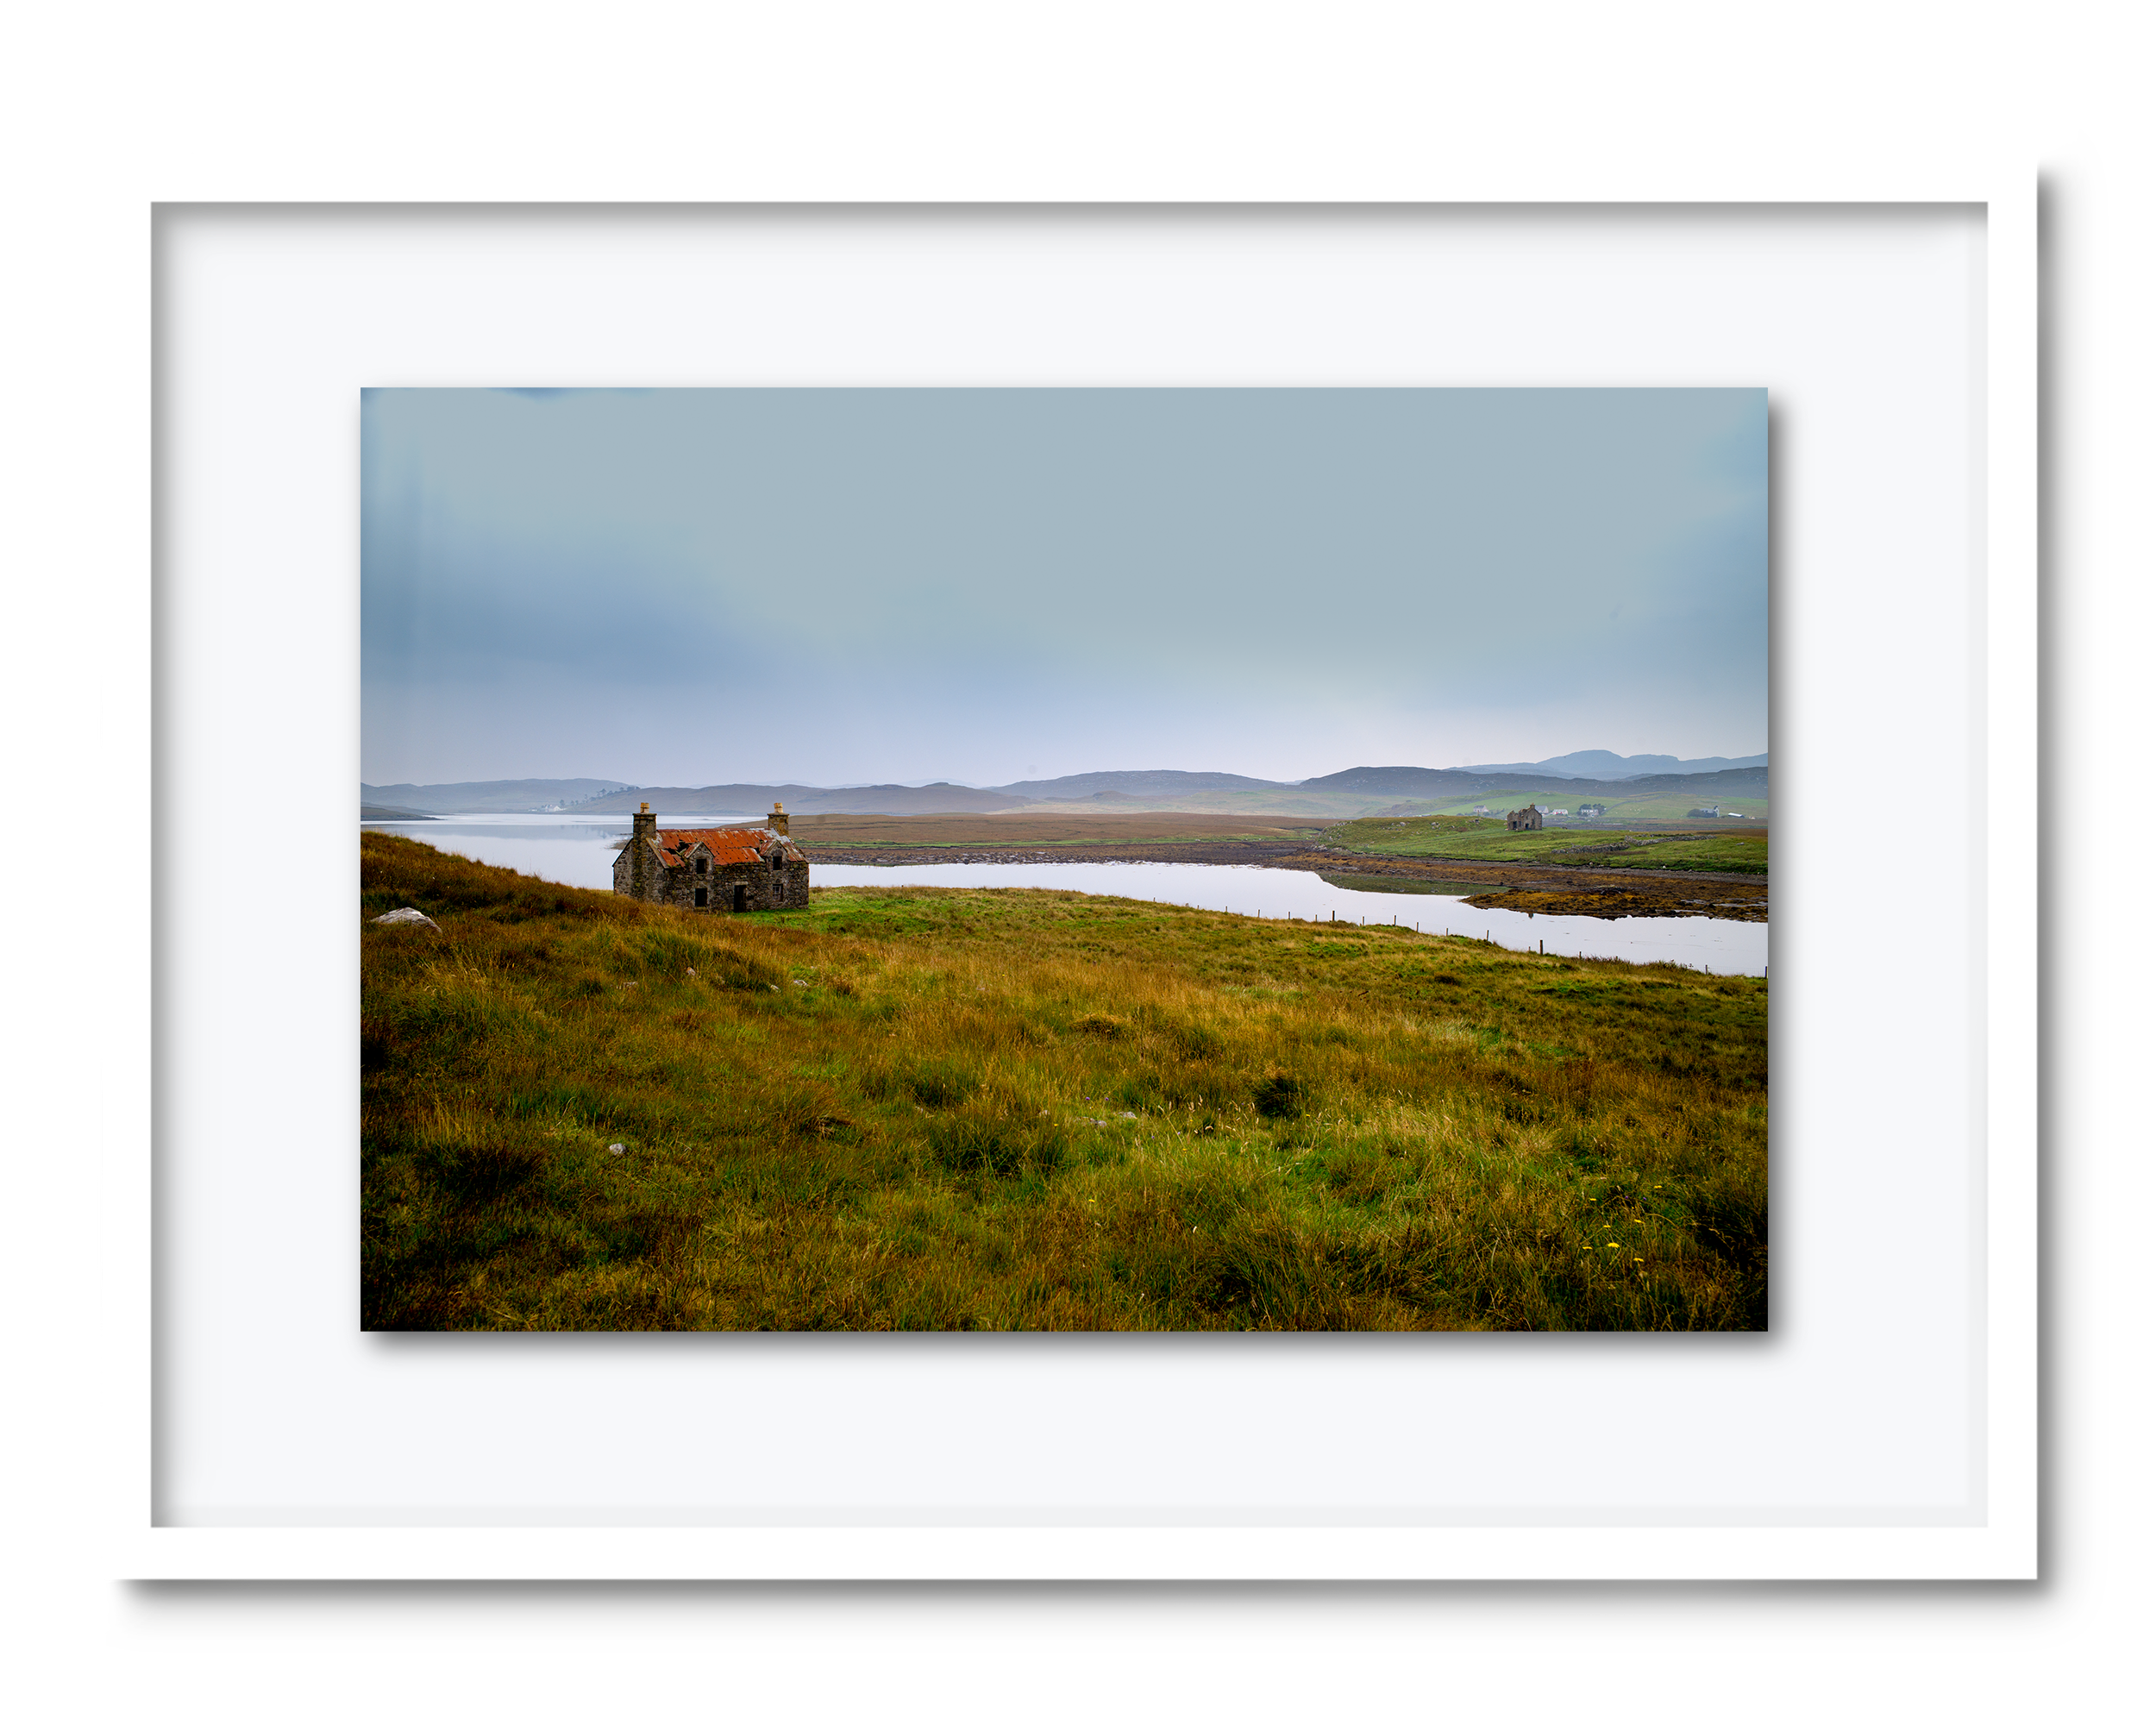 27.david-pearce-outer-hebrides copy.png